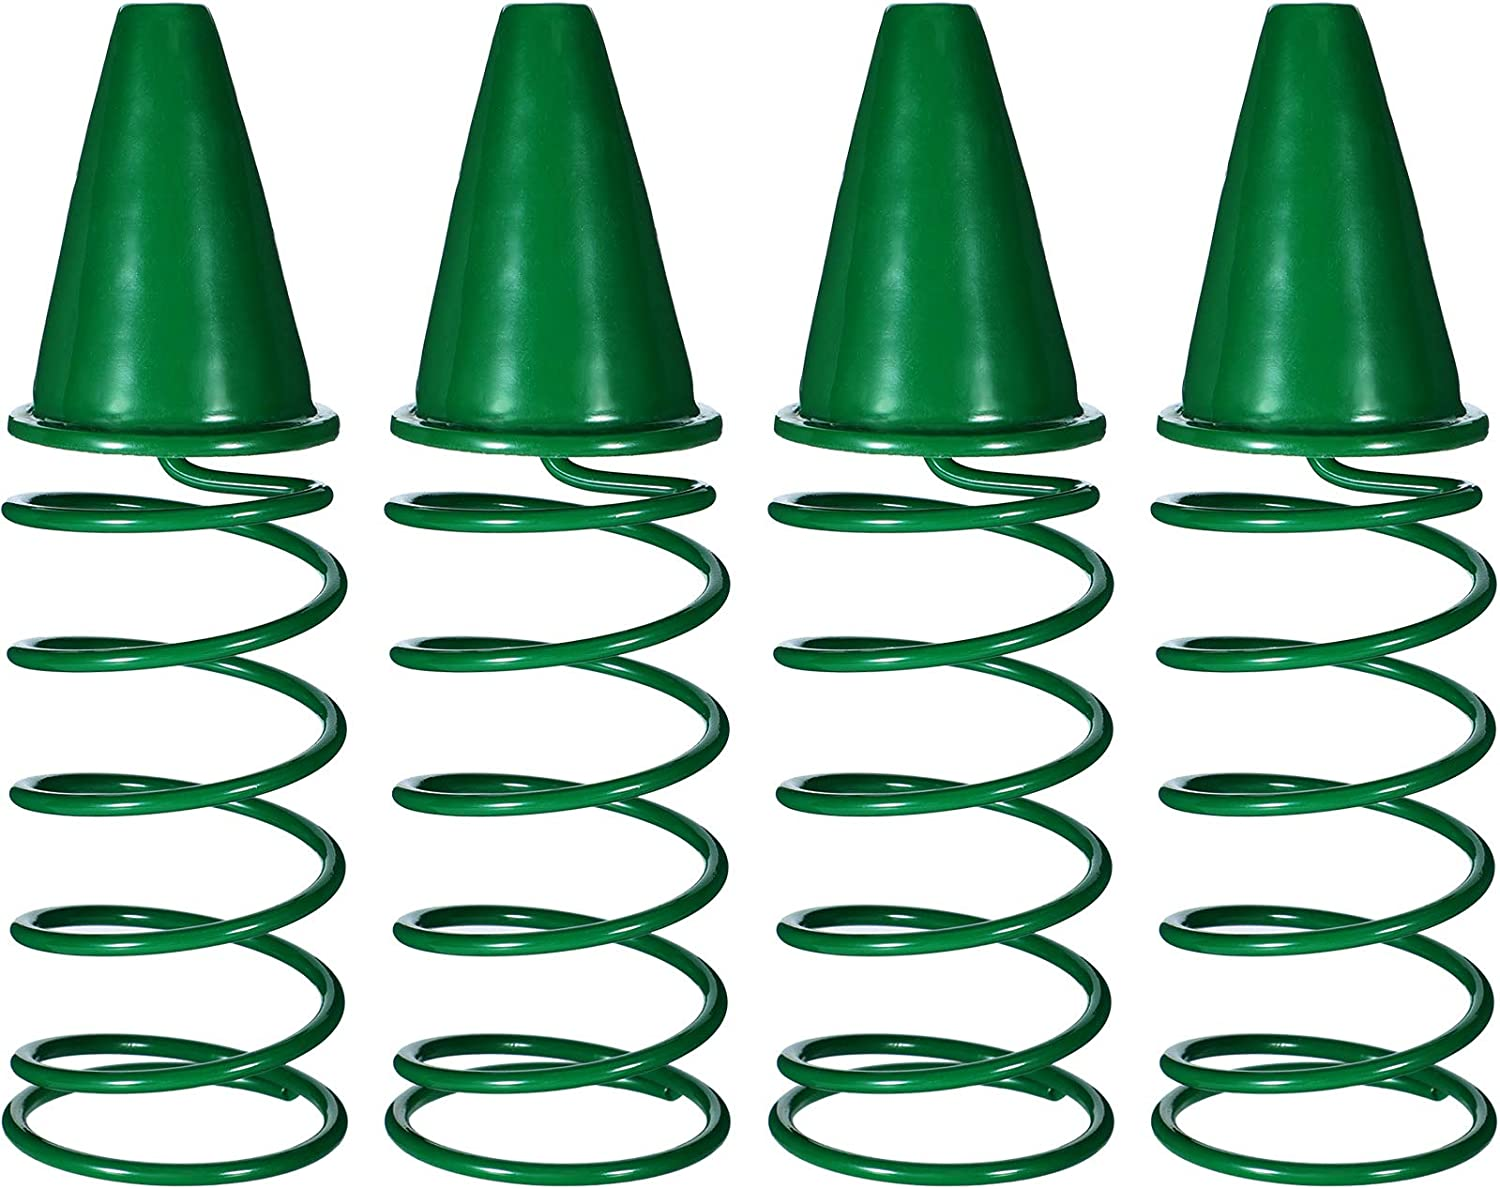 4 Pieces Christmas Tree Topper Holder Metal Tree Topper Stabilizer Green Christmas Tree Support Rod for Stabilizing Xmas Holiday Treetop Ornaments